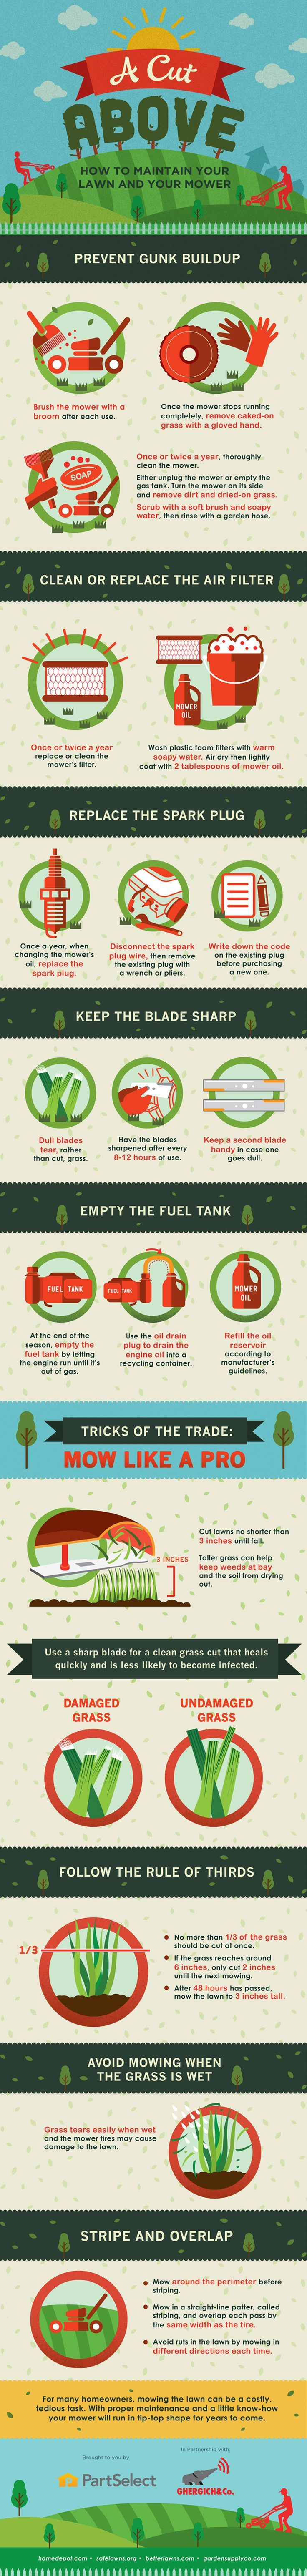 (infographic) How to Maintain Mowers All Year Lawn mower